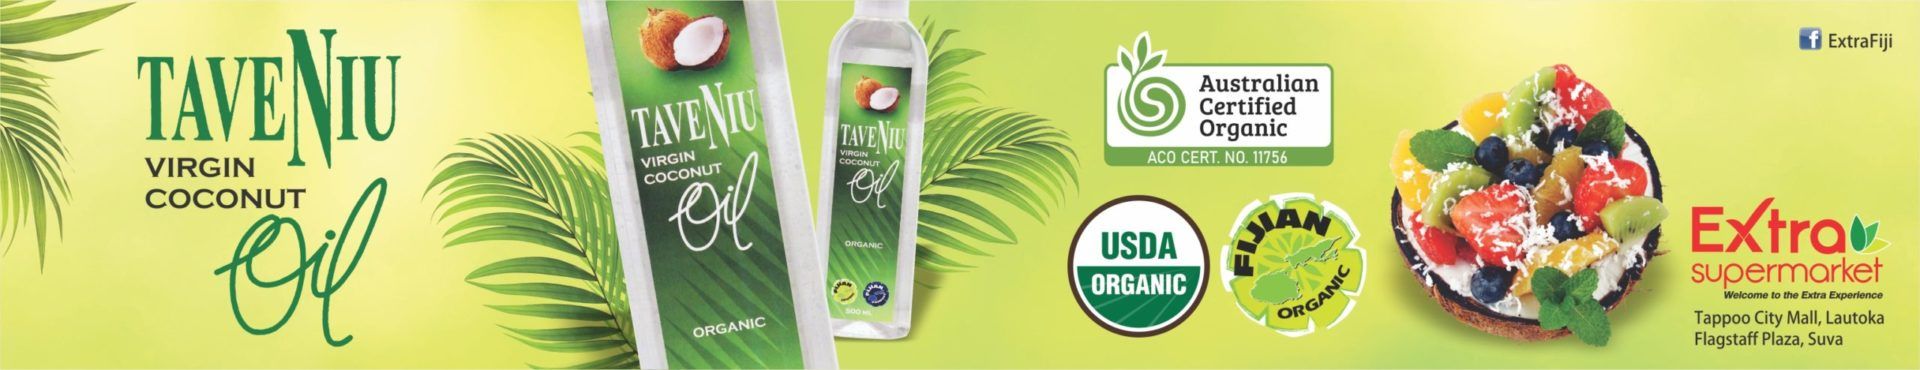 Fiji Premium TaveNiu Virgin Coconut Oil at Extra Supermarket